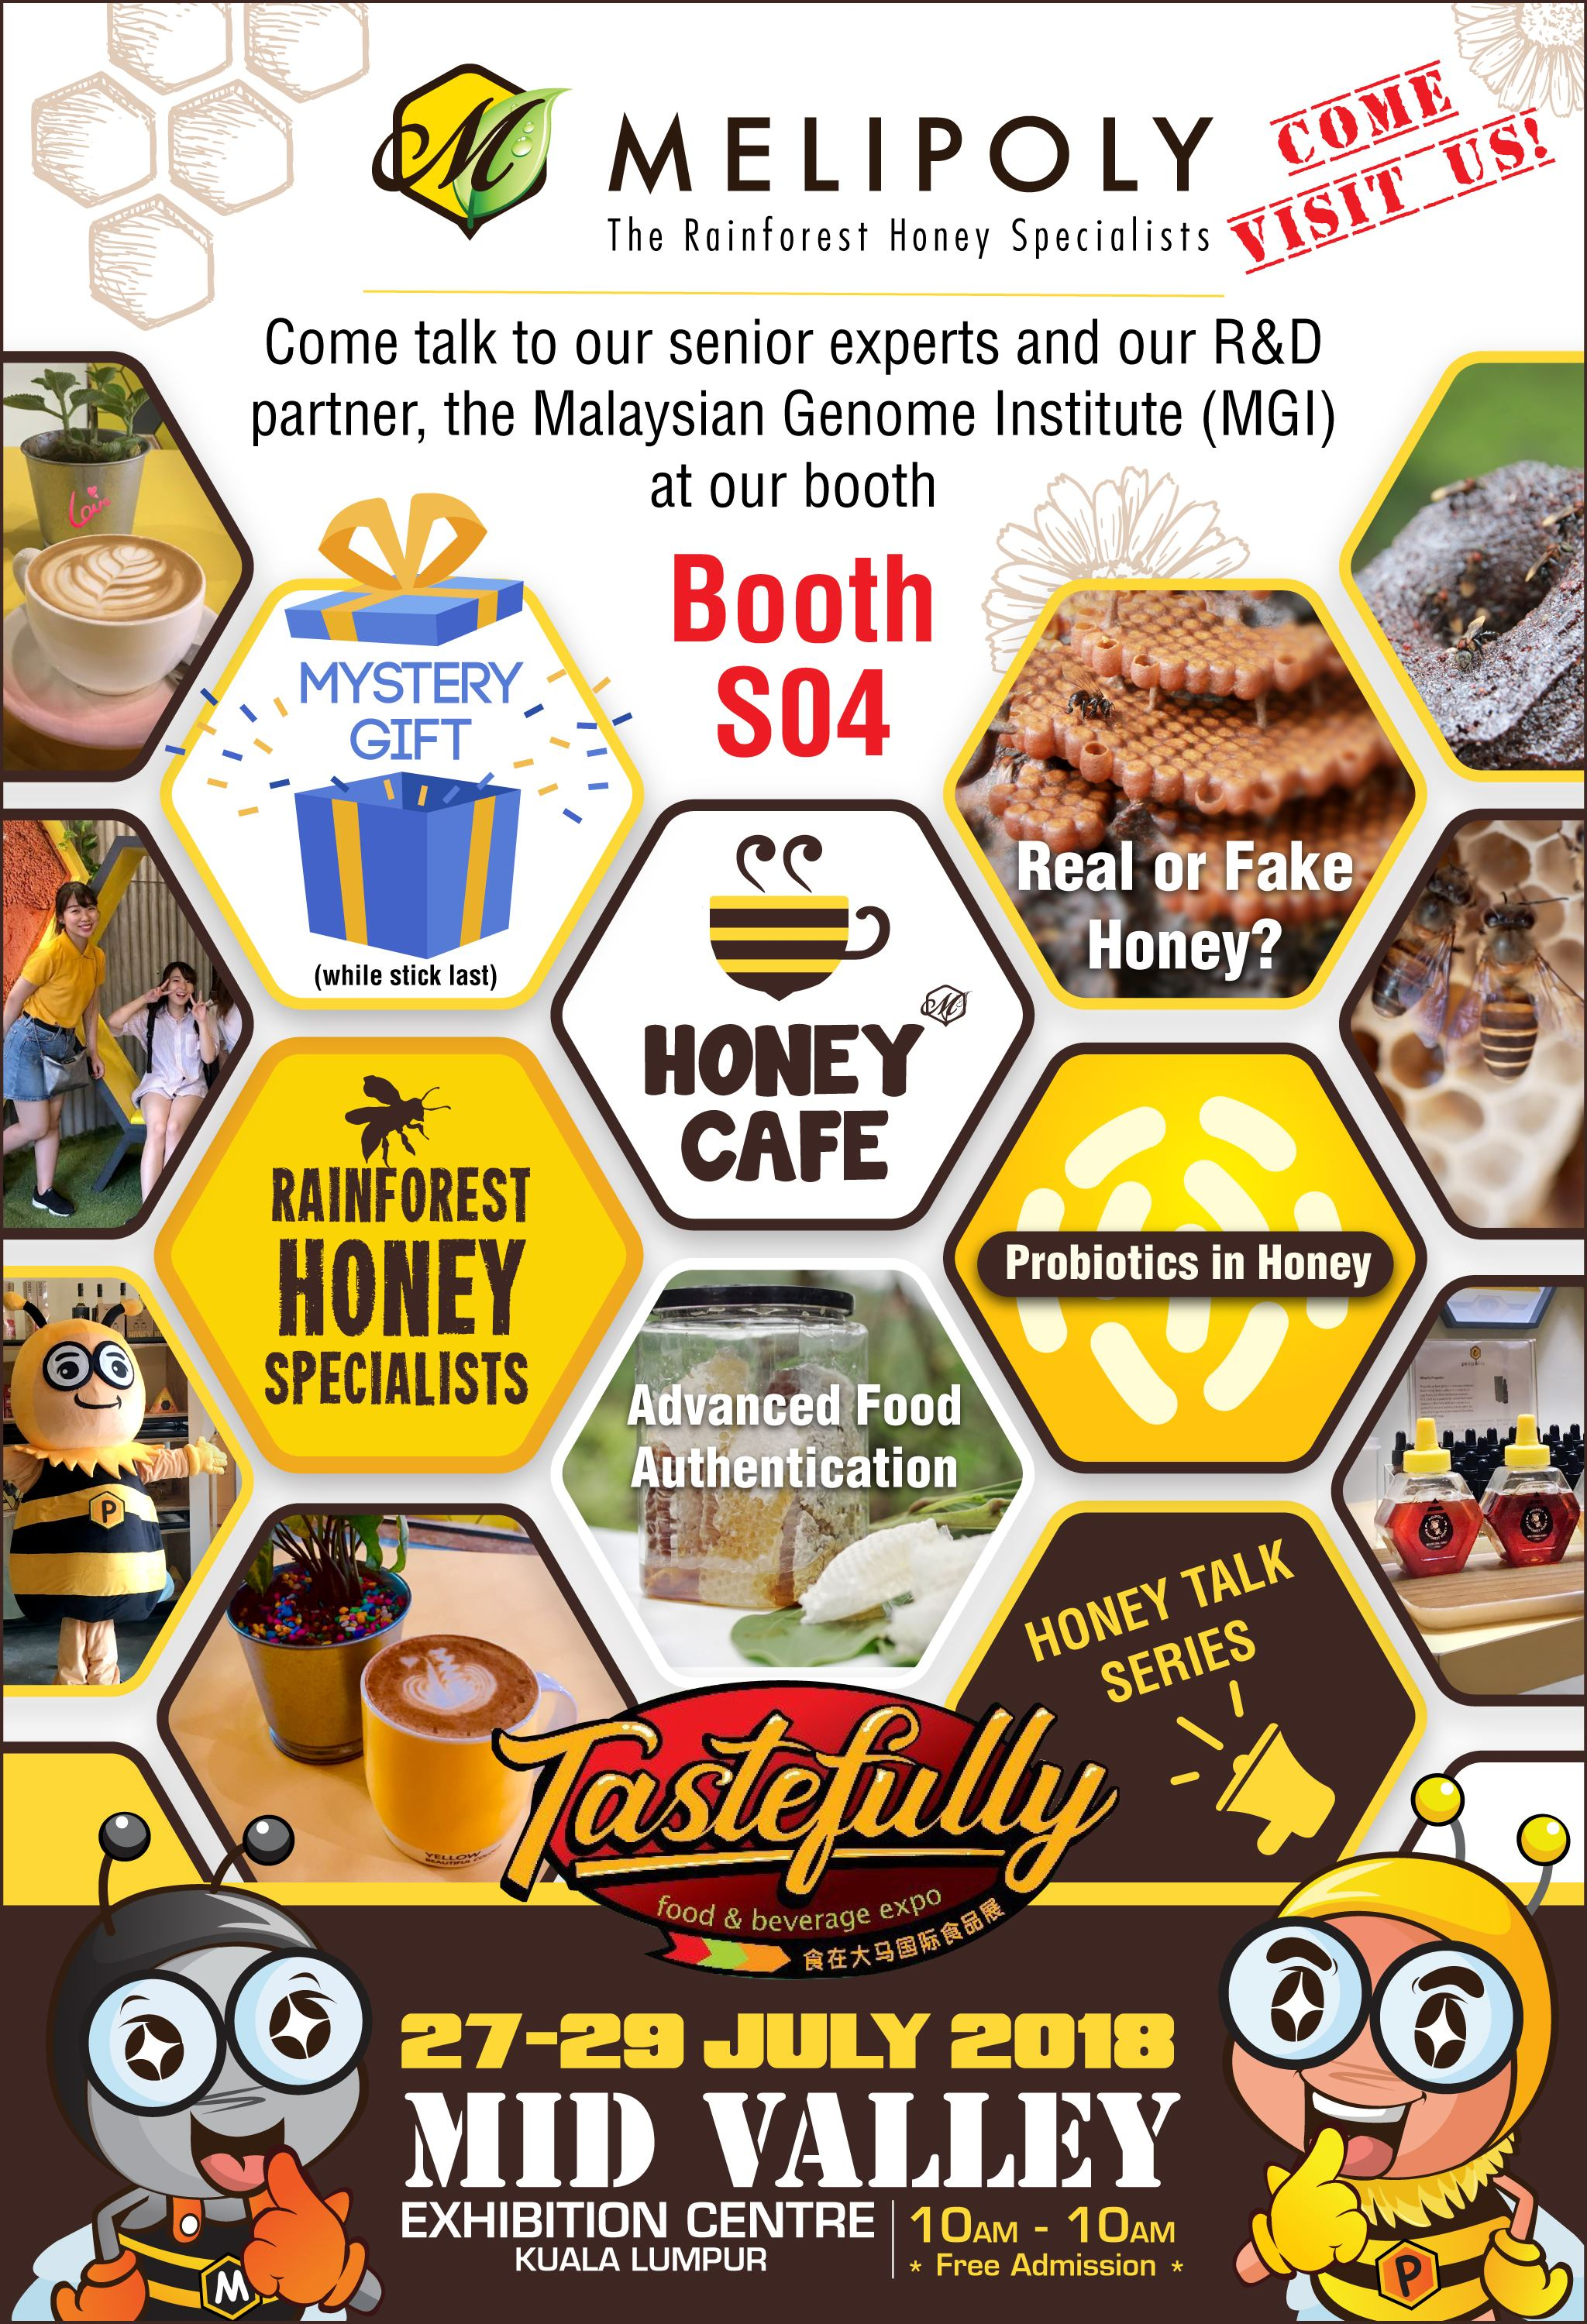 Melipoly - Tastefully F&B Expo 2018